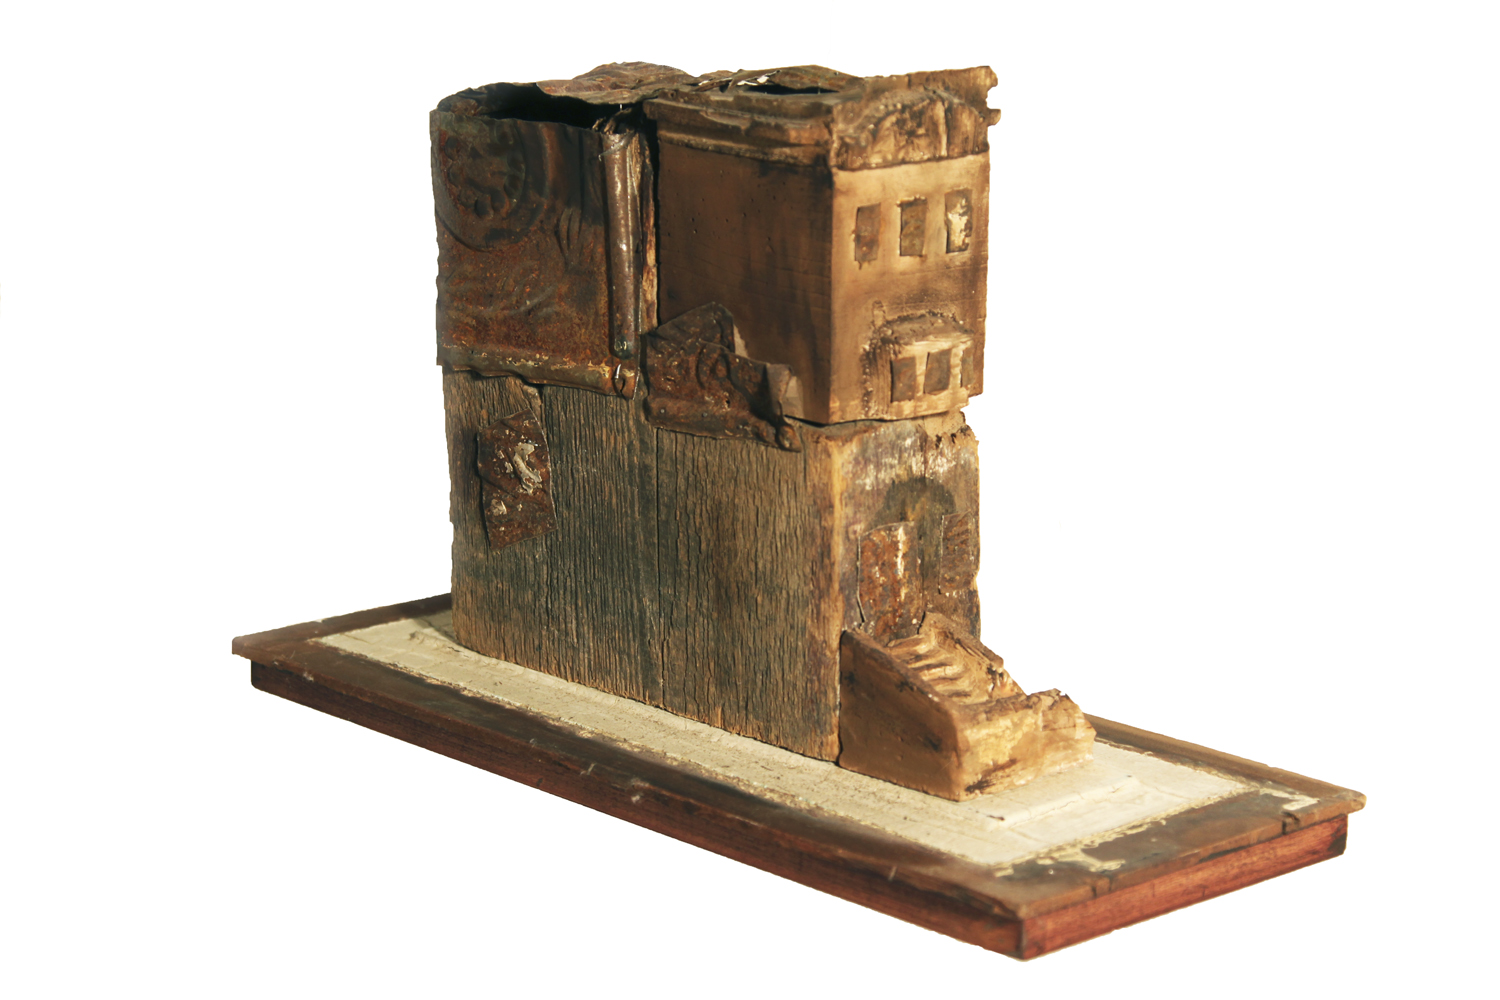 BROWNSTONE III, 2009  Wood, tin, plaster, paint  10 1/4 x 7 x 17 1/4 inches